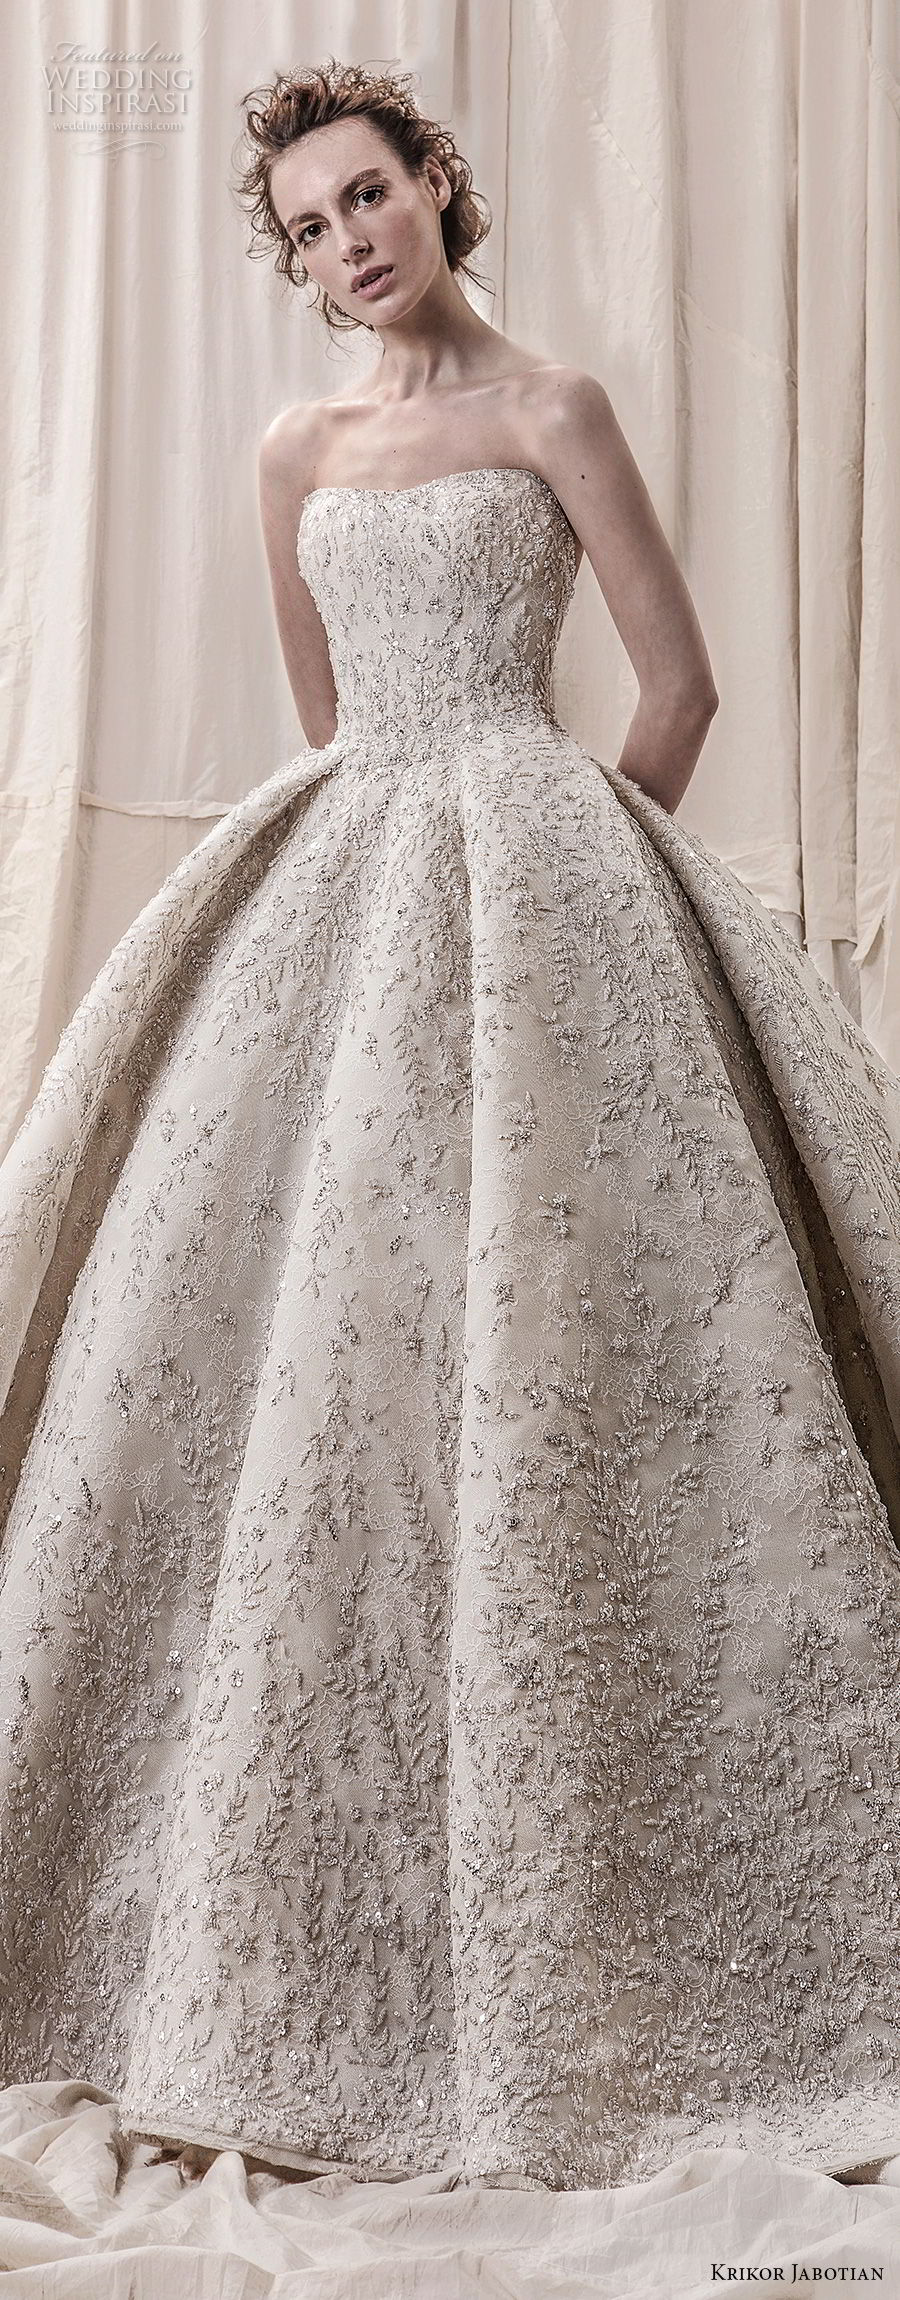 krikor jabotian spring 2018 bridal straplss semi sweetheart neckline full embellishment glamorous princess ball gown a  line wedding dress open back royal train (05) lv